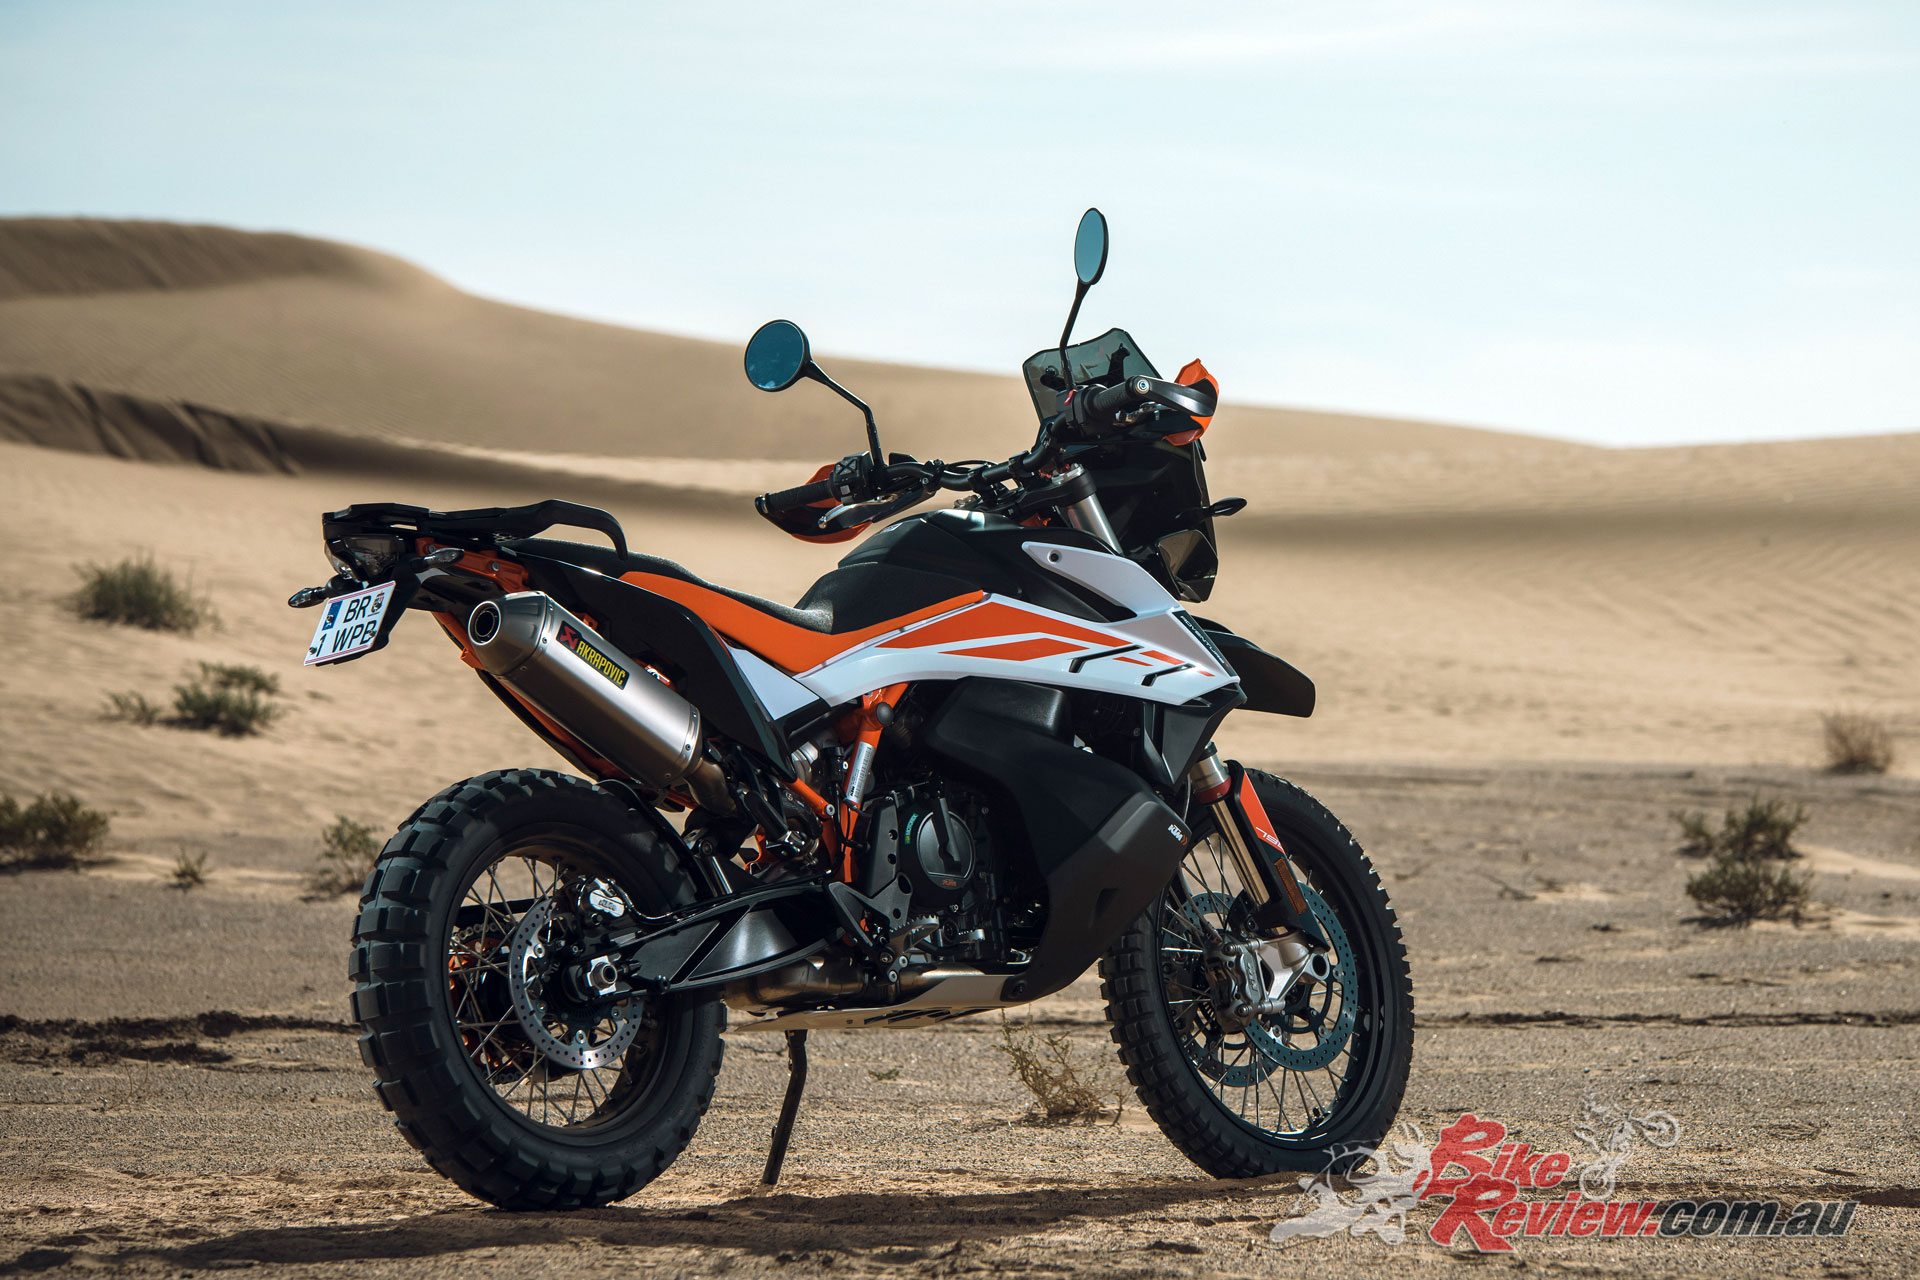 The KTM 790 Adventure R epitomises the hardcore adventure machine